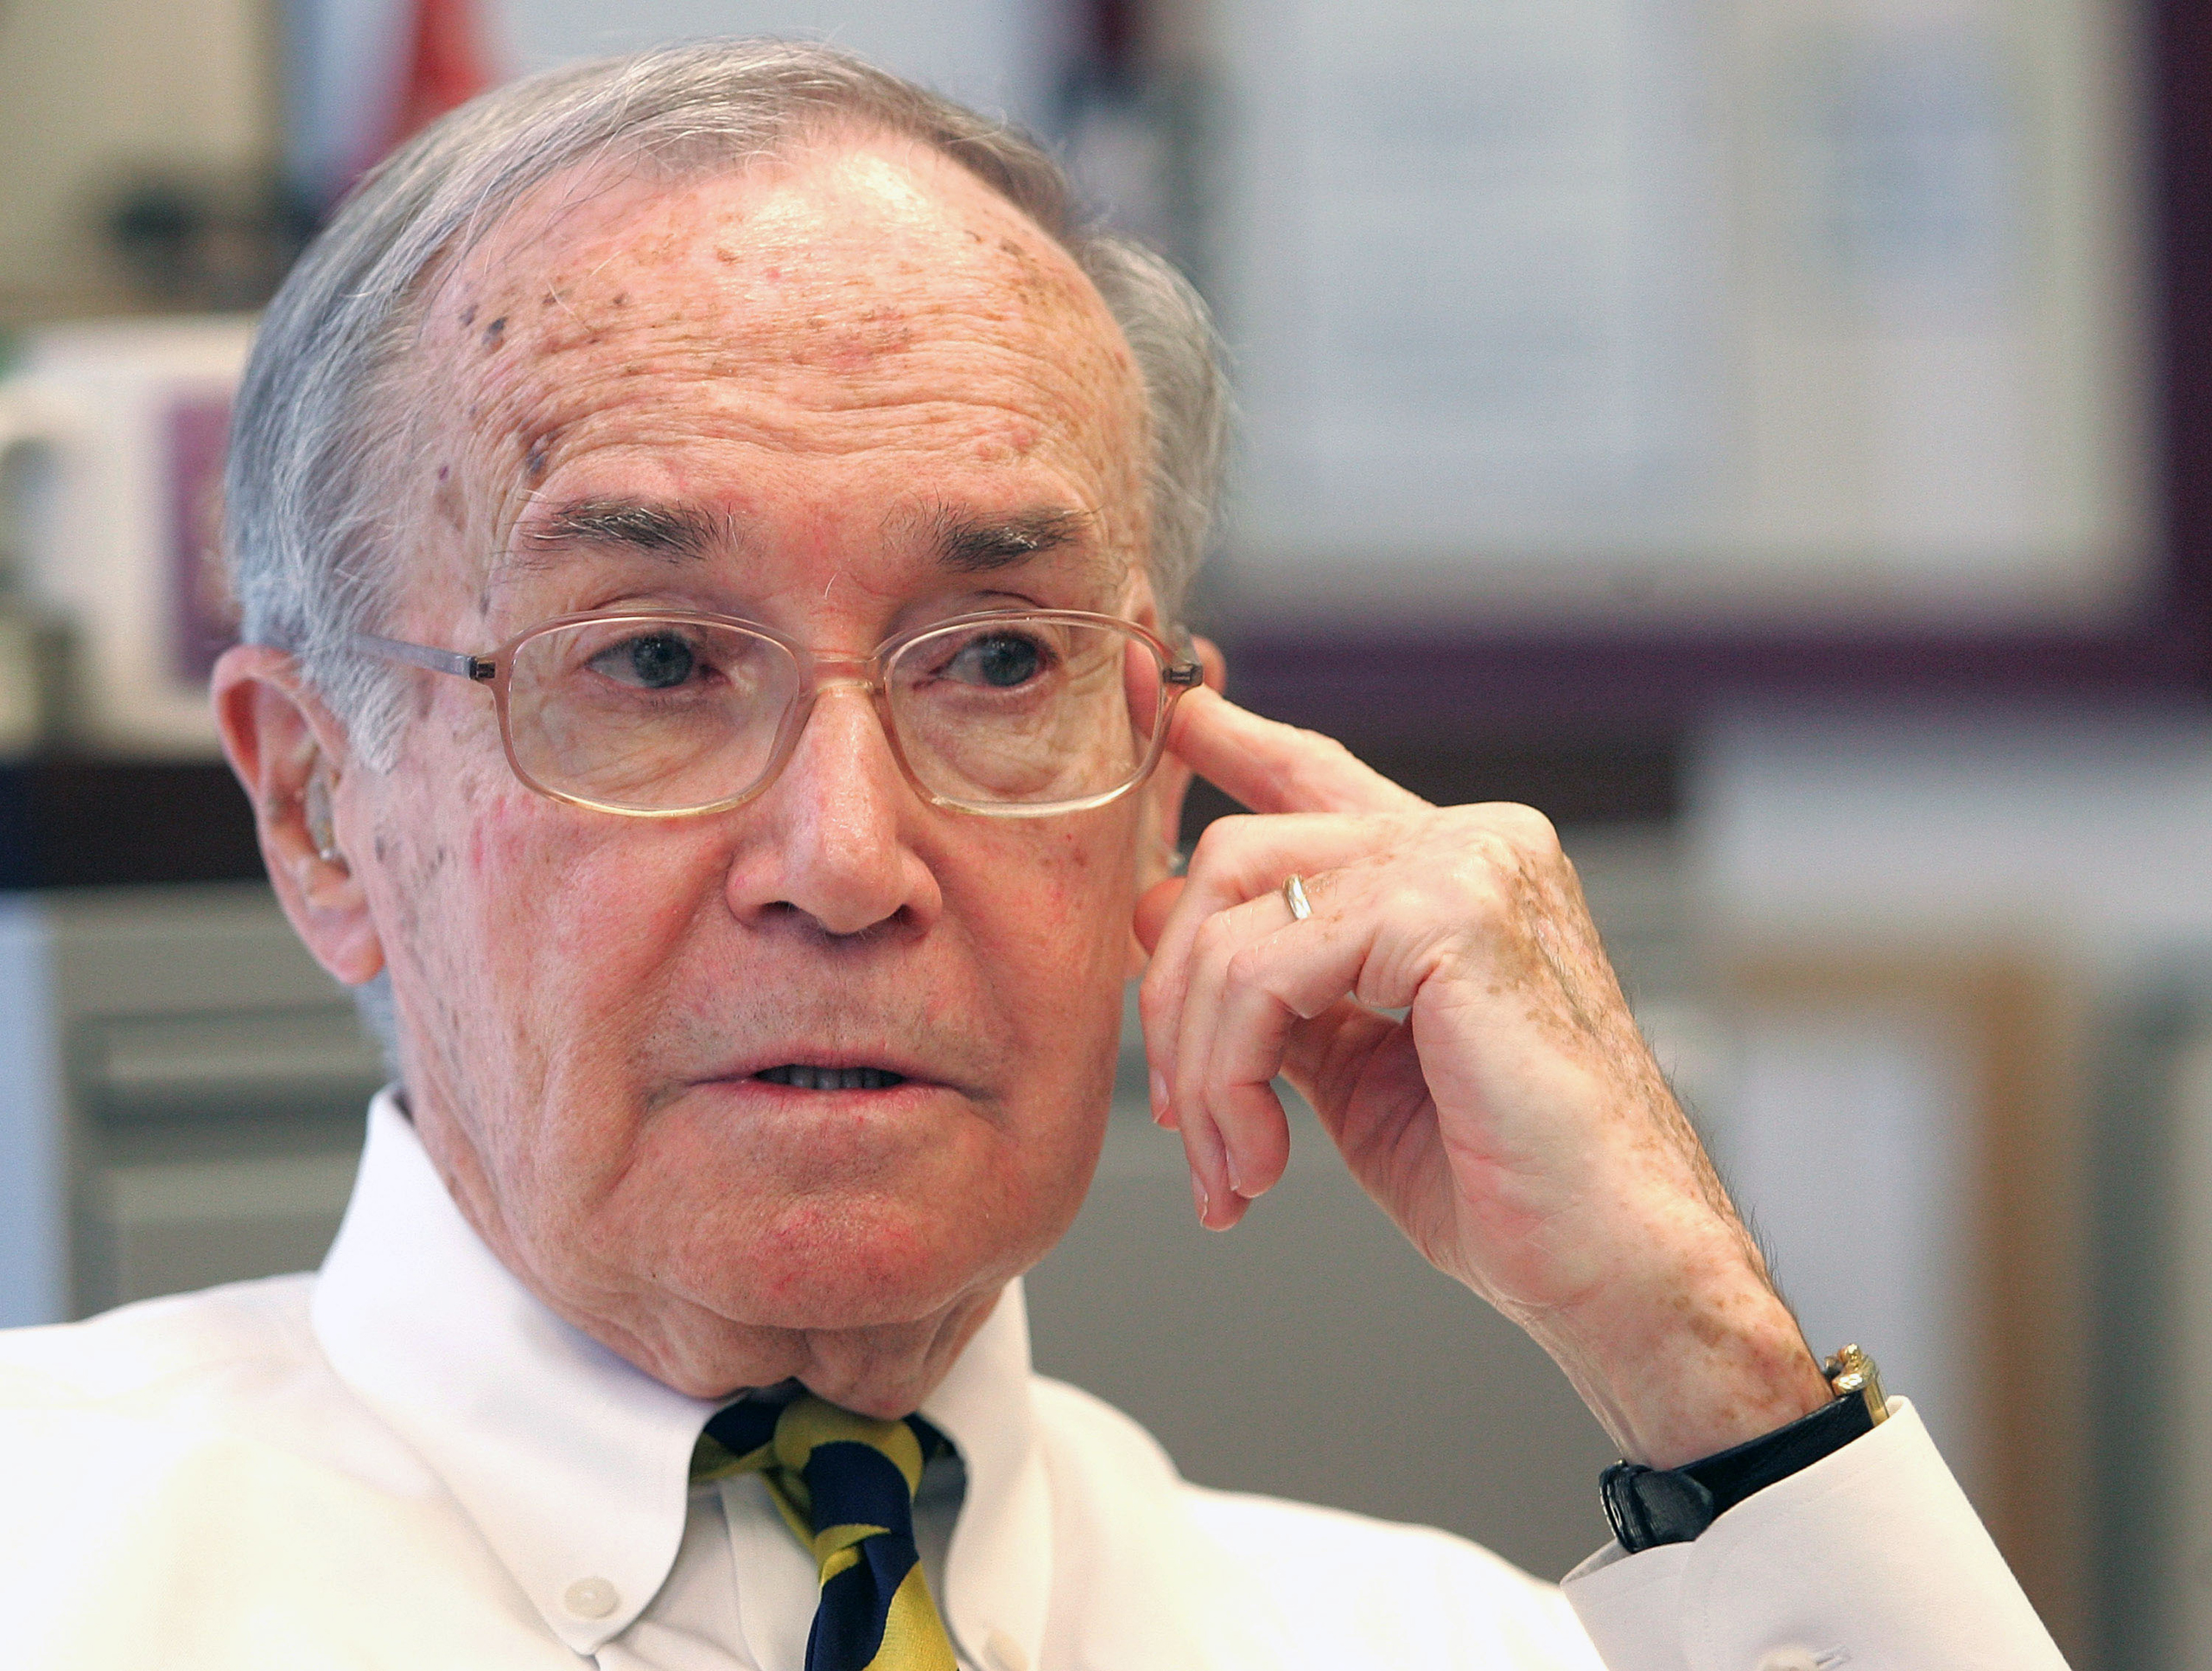 Newton Minow speaks during an interview in Chicago, Illinois, on June 11, 2008.